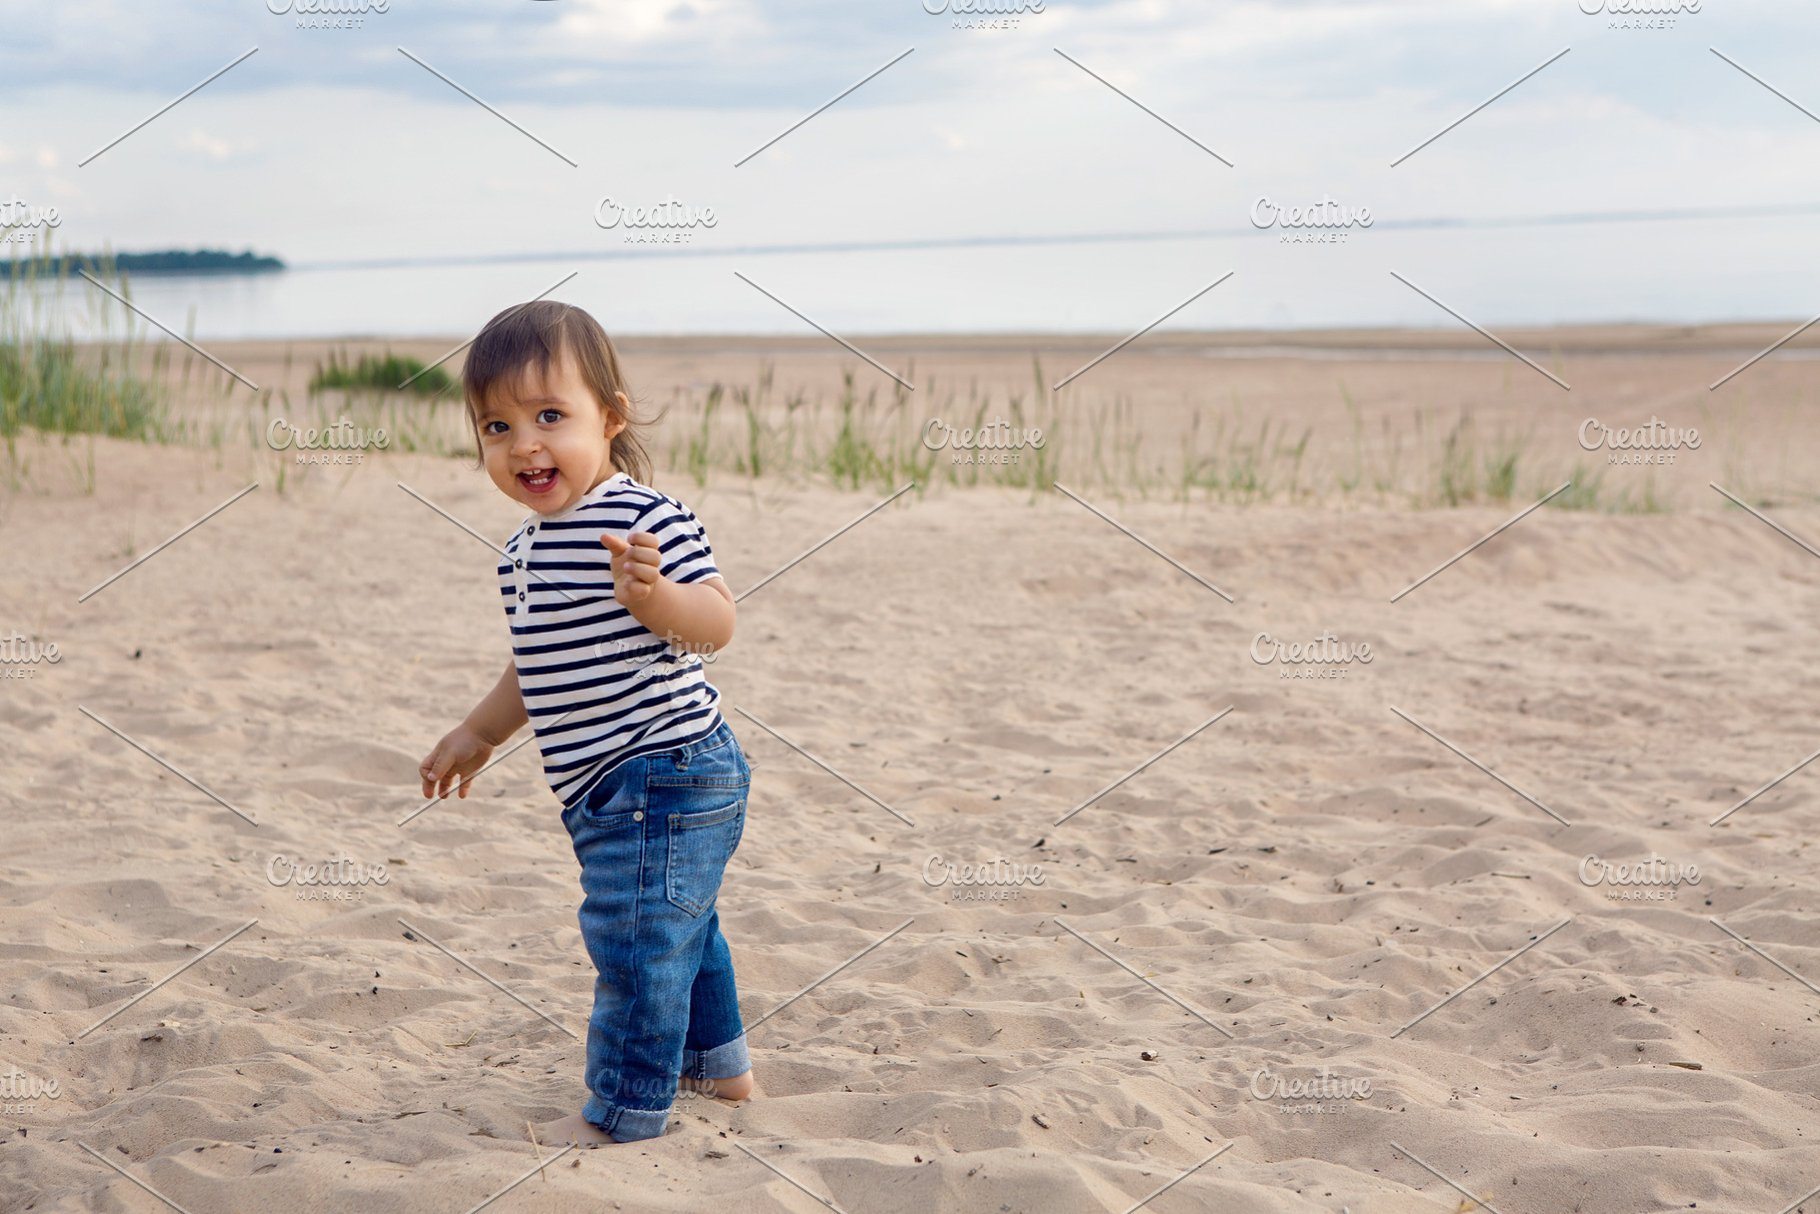 765aabd23 barefoot child walks on a sandy beach in a t-shirt ~ People Photos ...